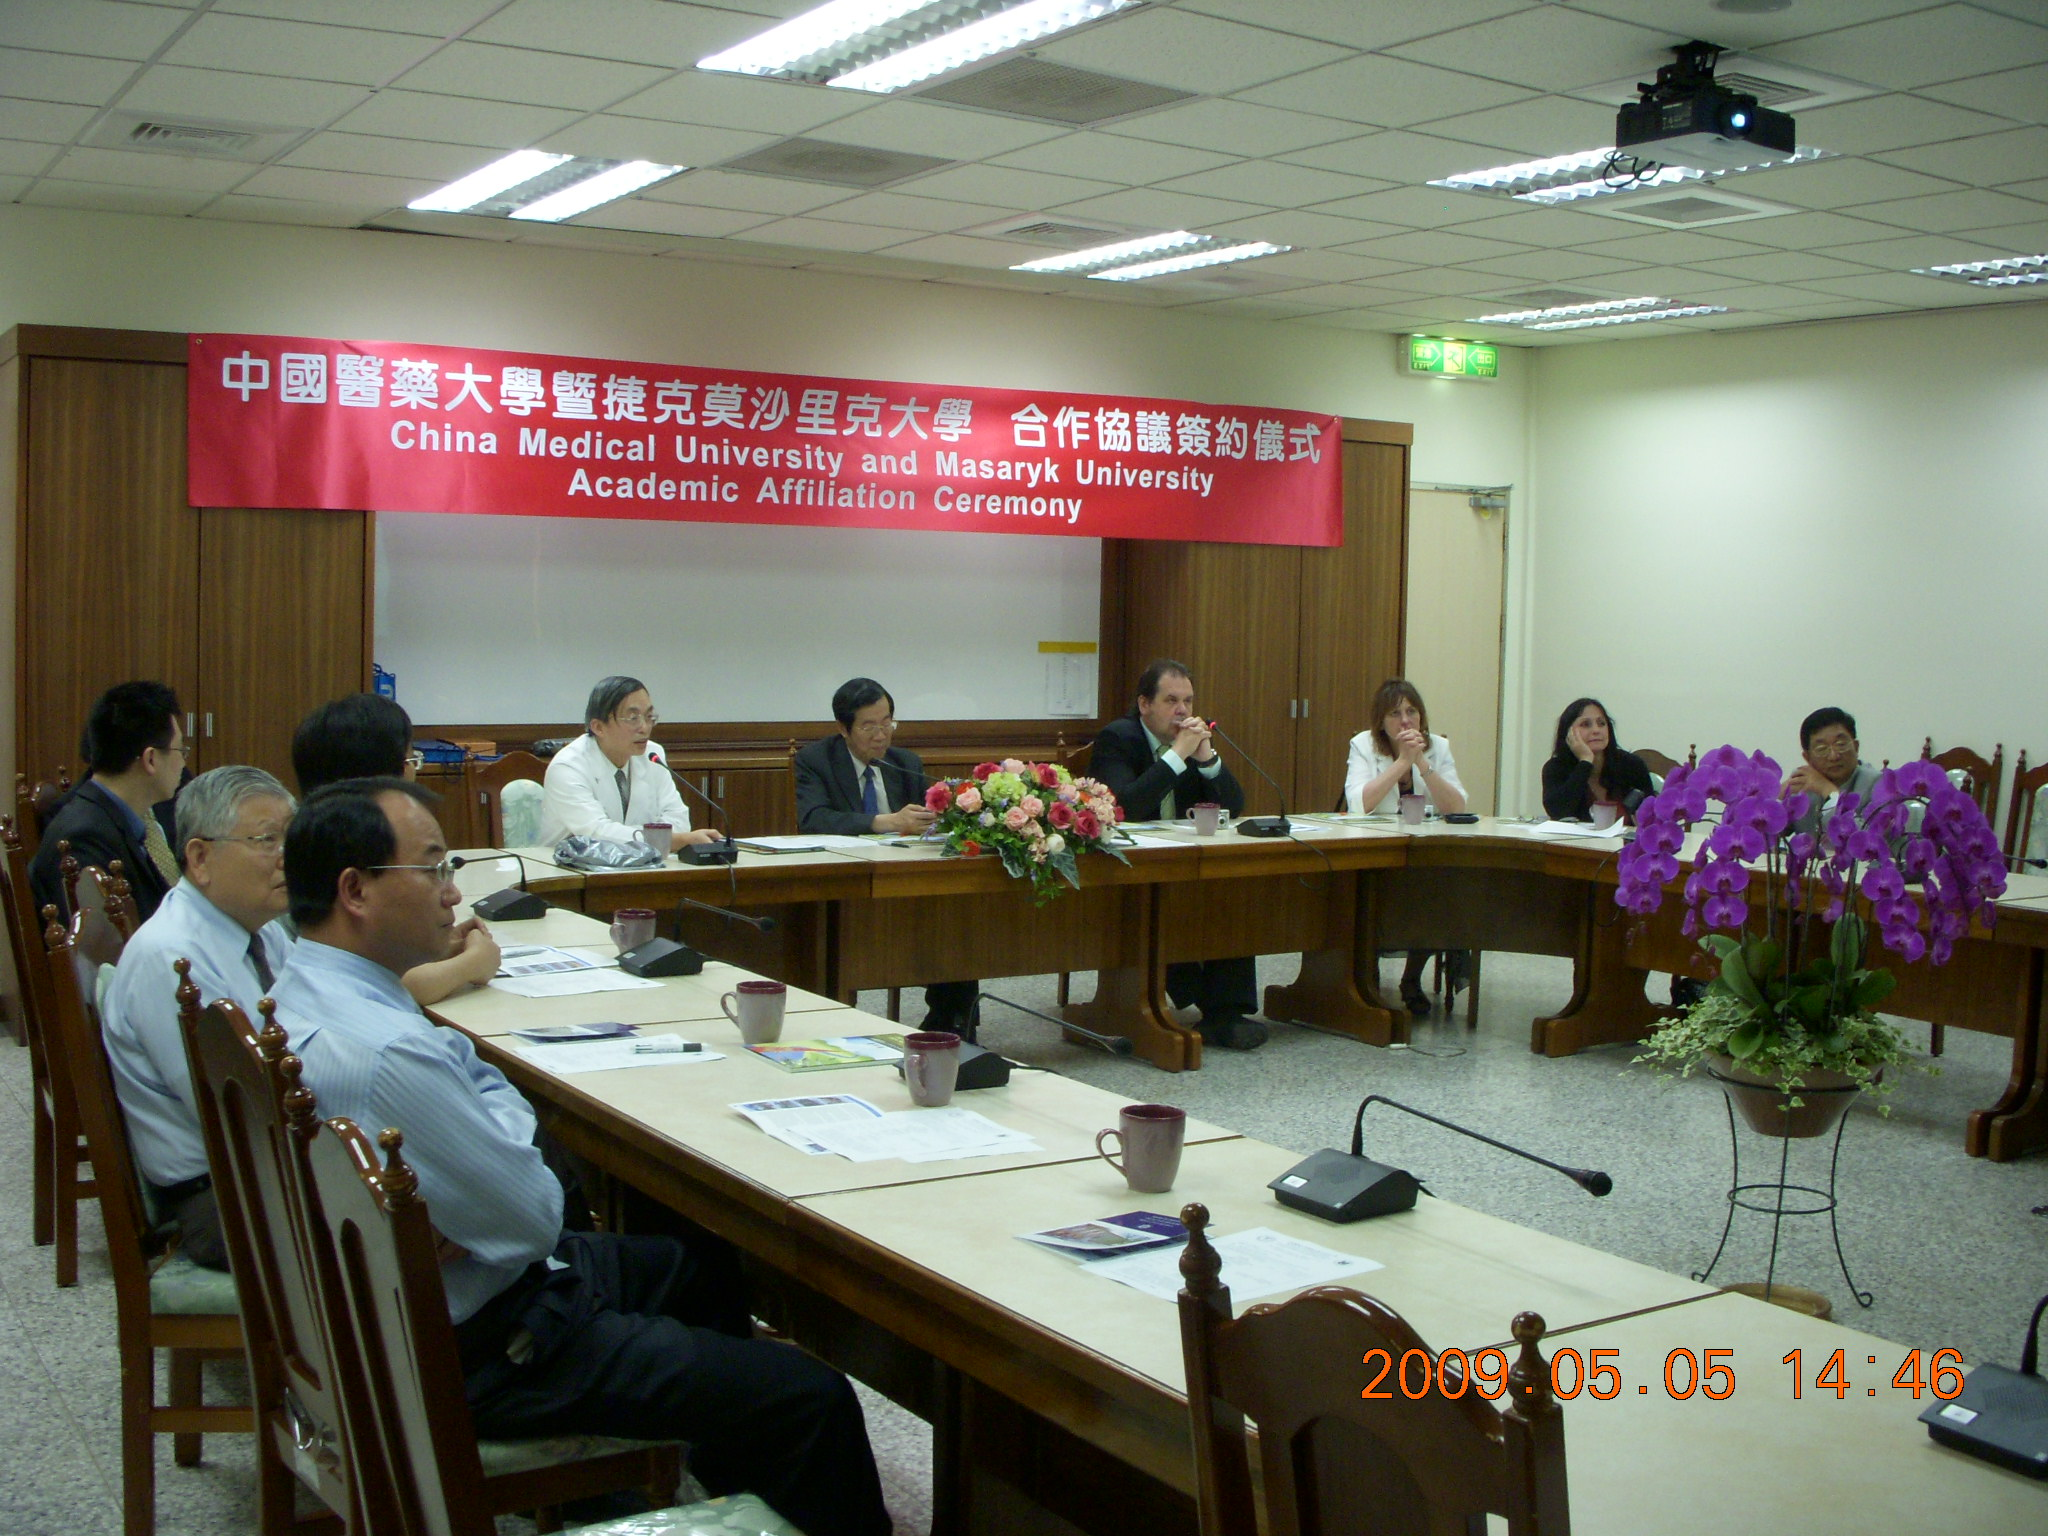 Prof. Wu-Chung Shen introduced the medical education in Taiwan.